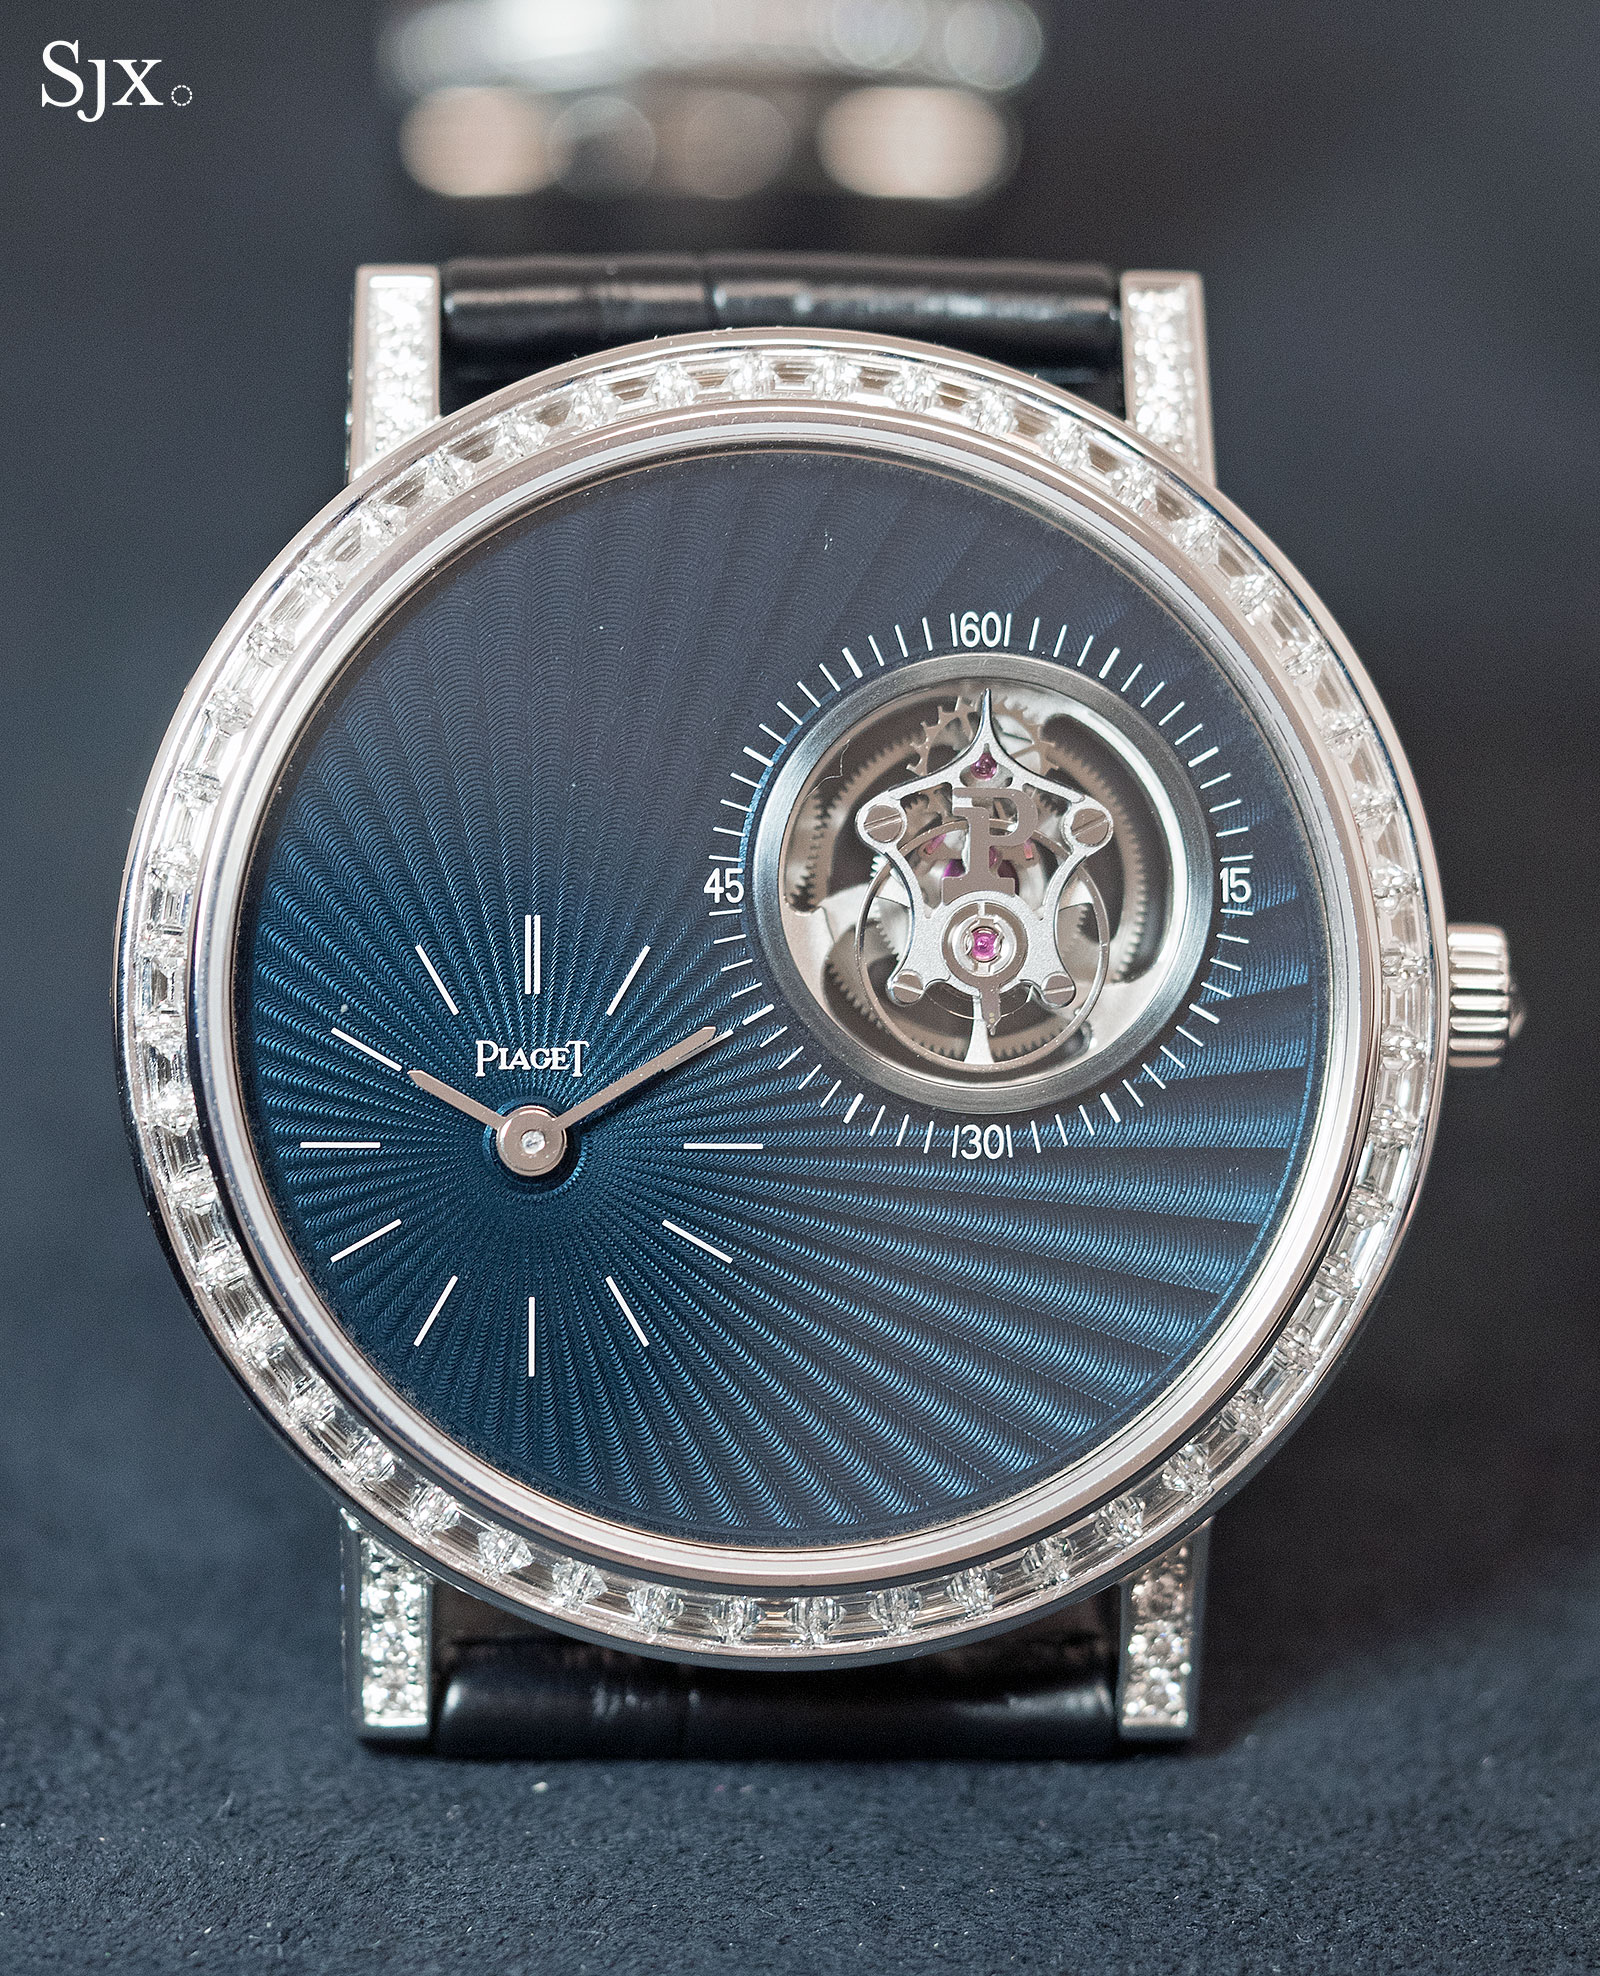 Piaget Altiplano 60th Anniversary Tourbillon High Jewellery 1